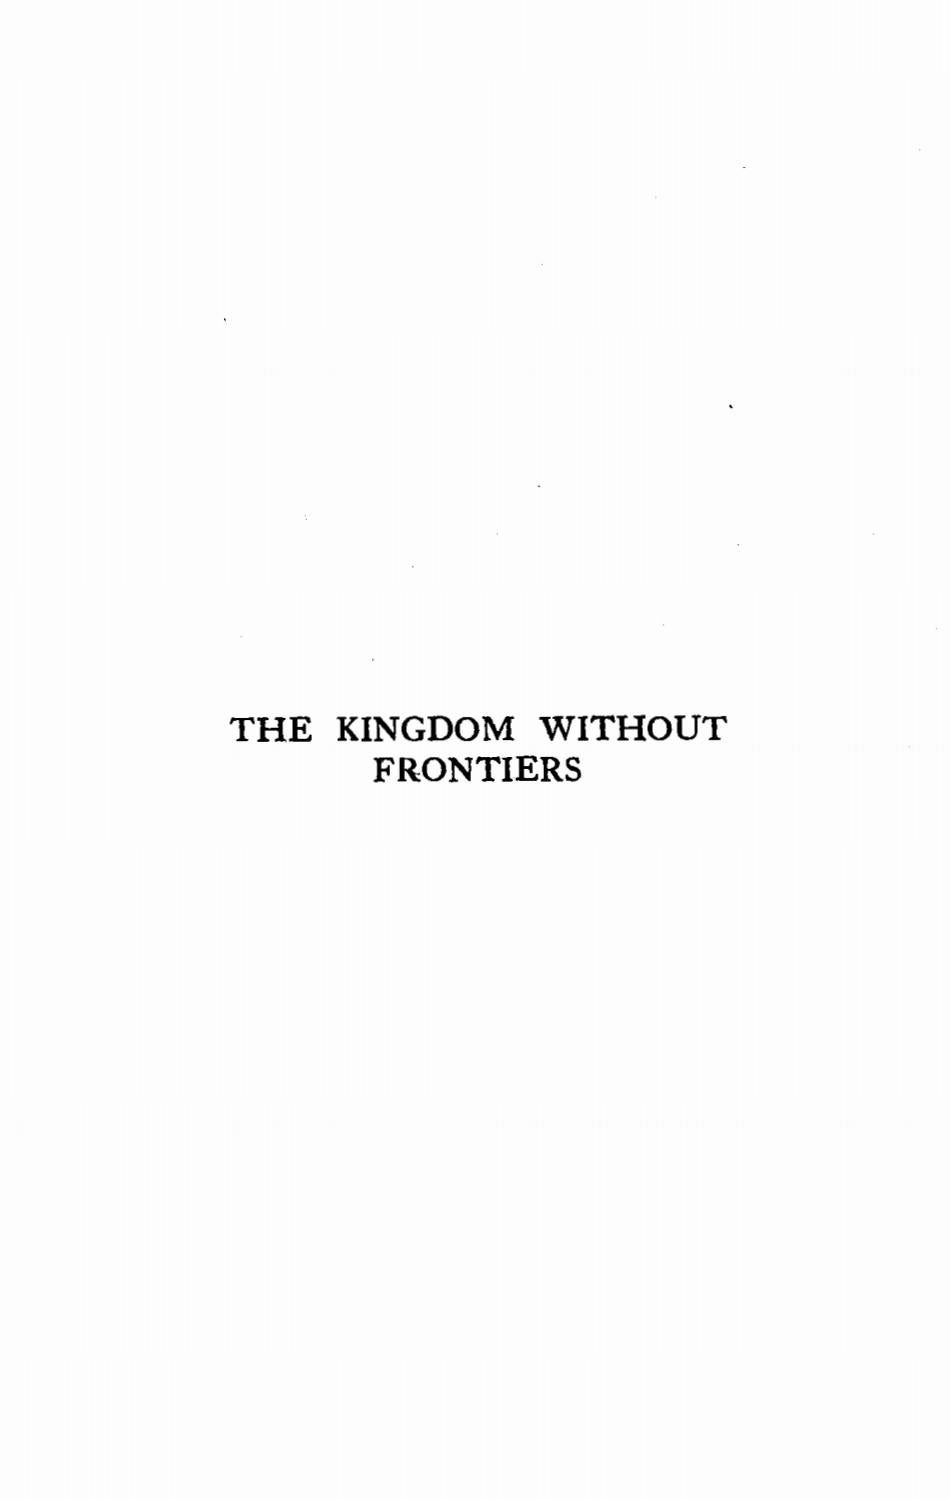 Thomas Moscrop [1860-1920], The Kingdom Without Frontiers  A